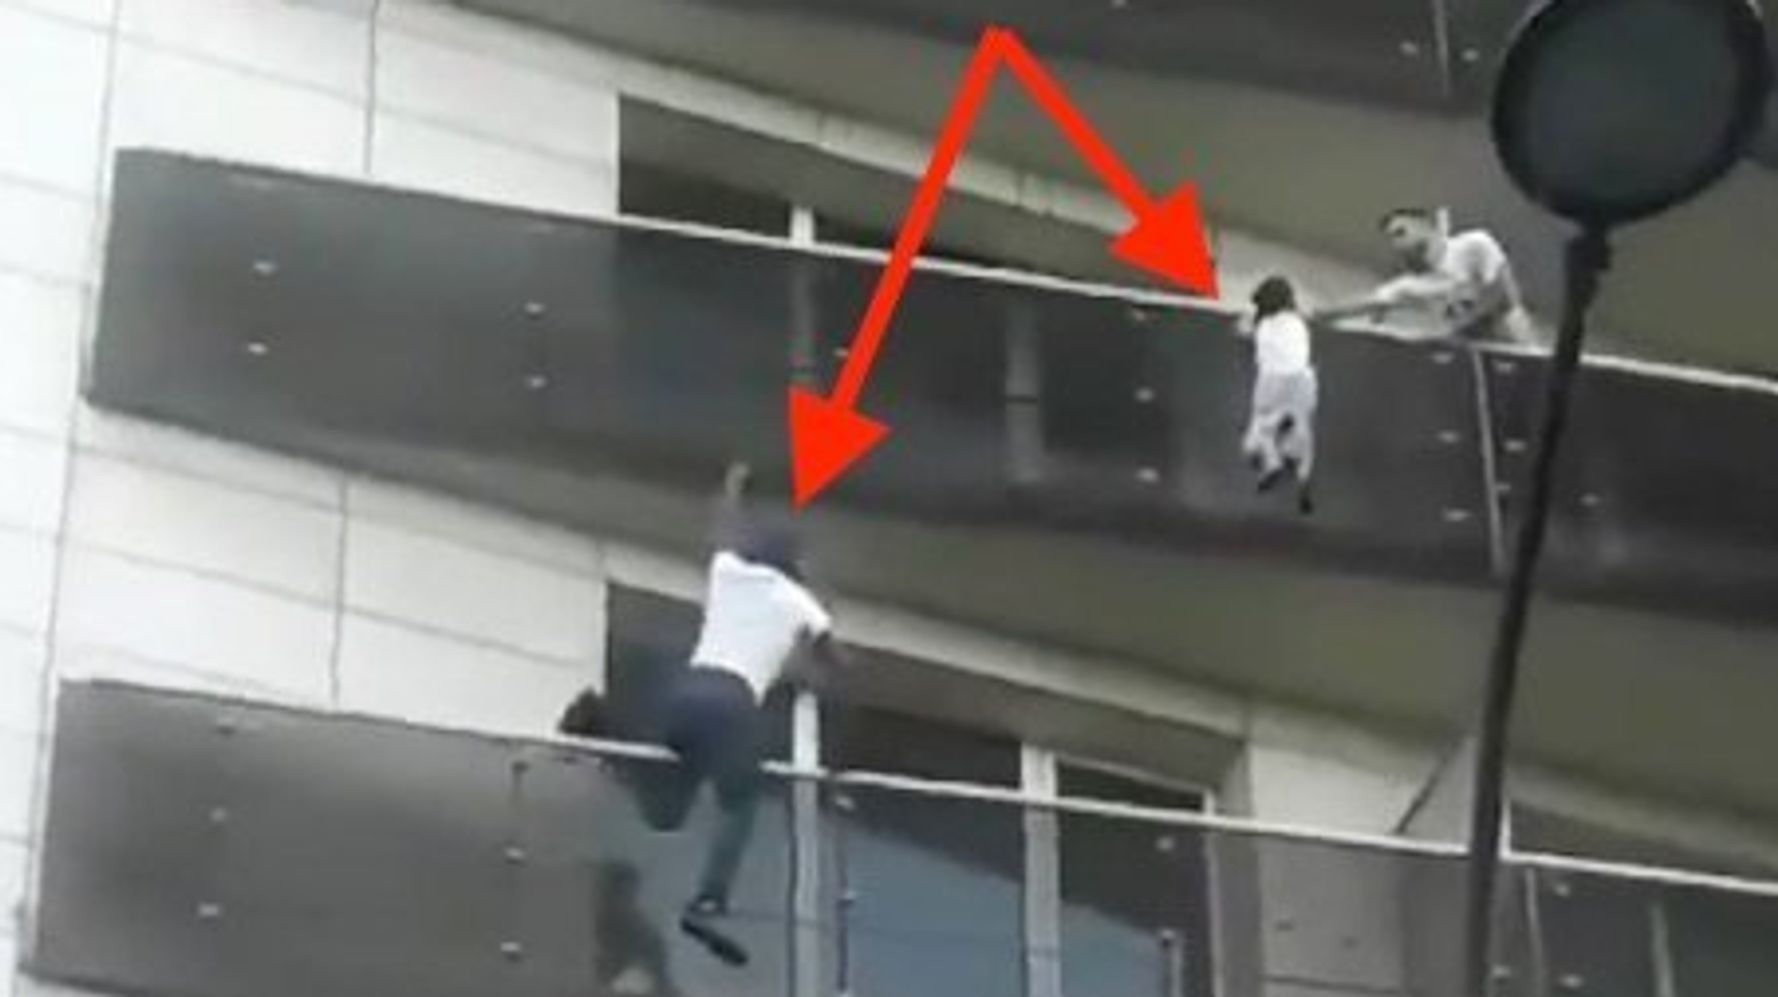 Real-Life Spider-Man Scrambles Up Building To Save A Dangling Child